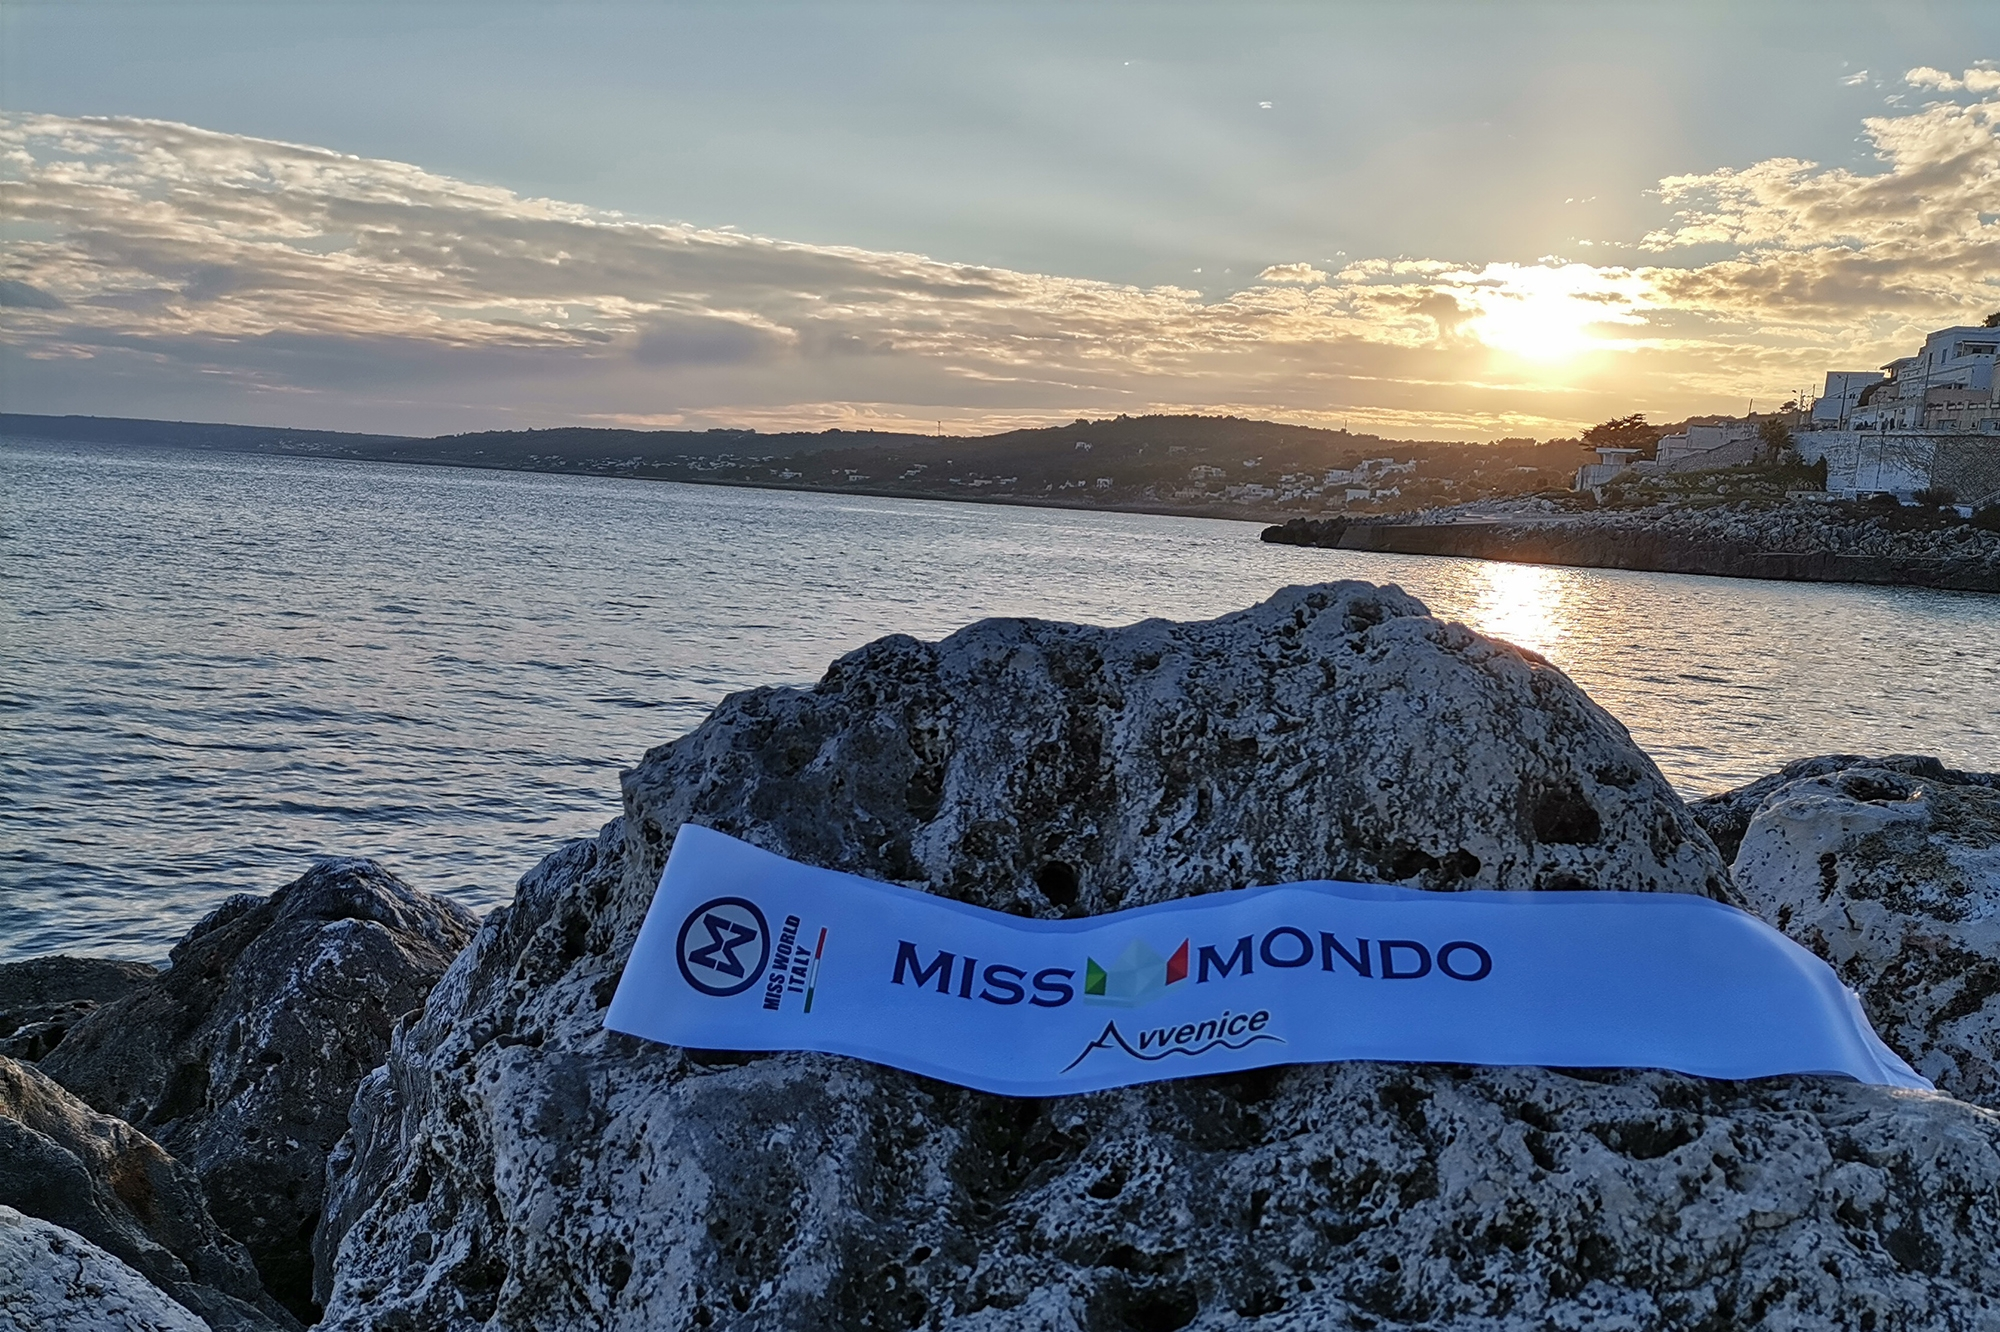 Avvenice - Miss World - Miss Mondo Italia - Official